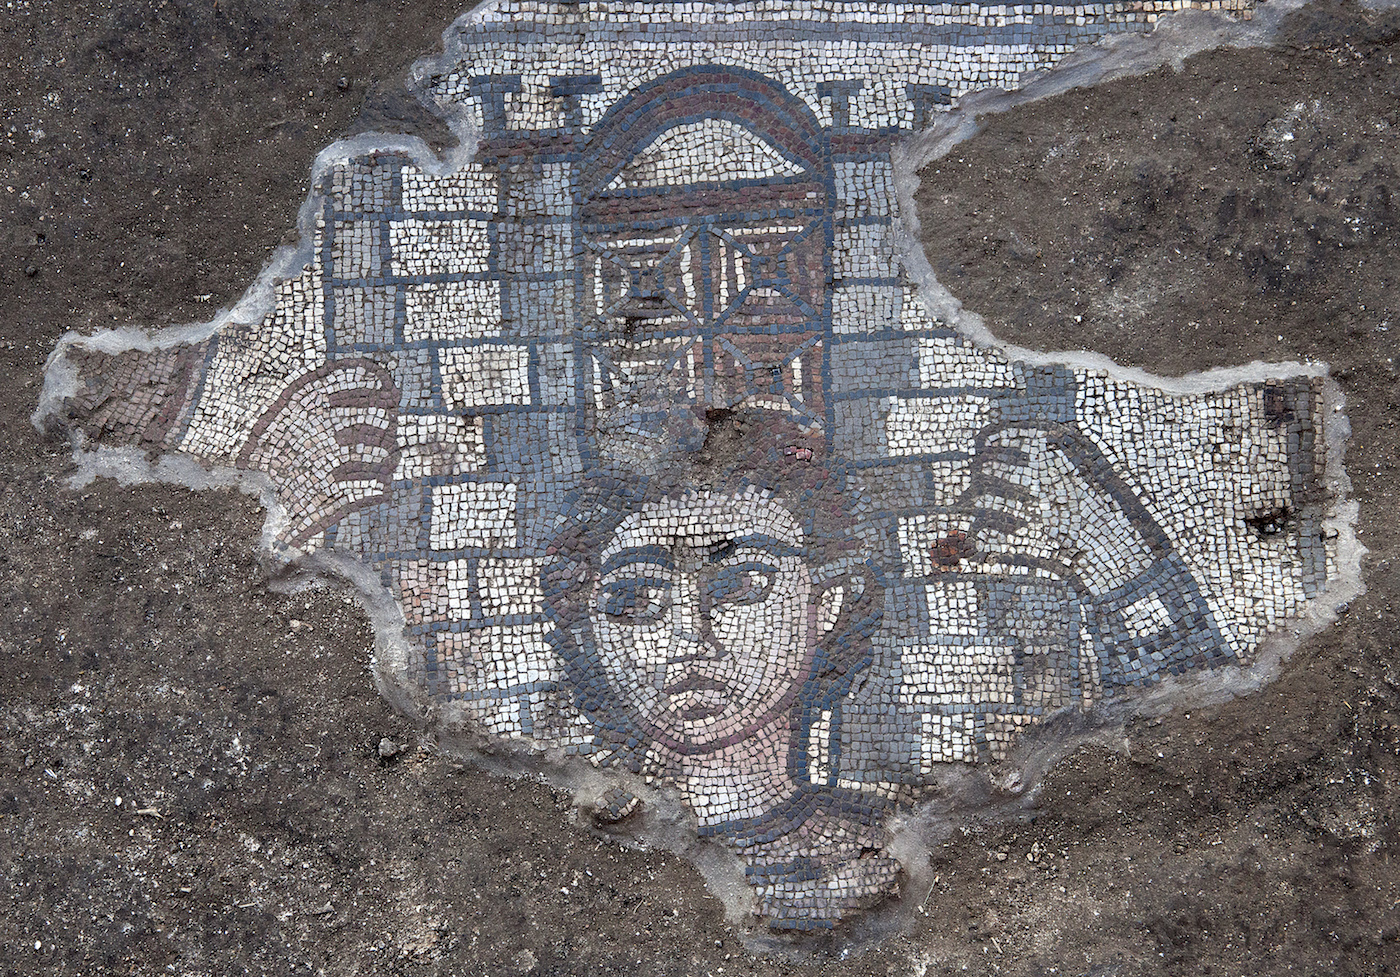 Mosaic showing Samson carrying the gate of Gaza, from the Huqoq excavations, directed by Jodi Magness.